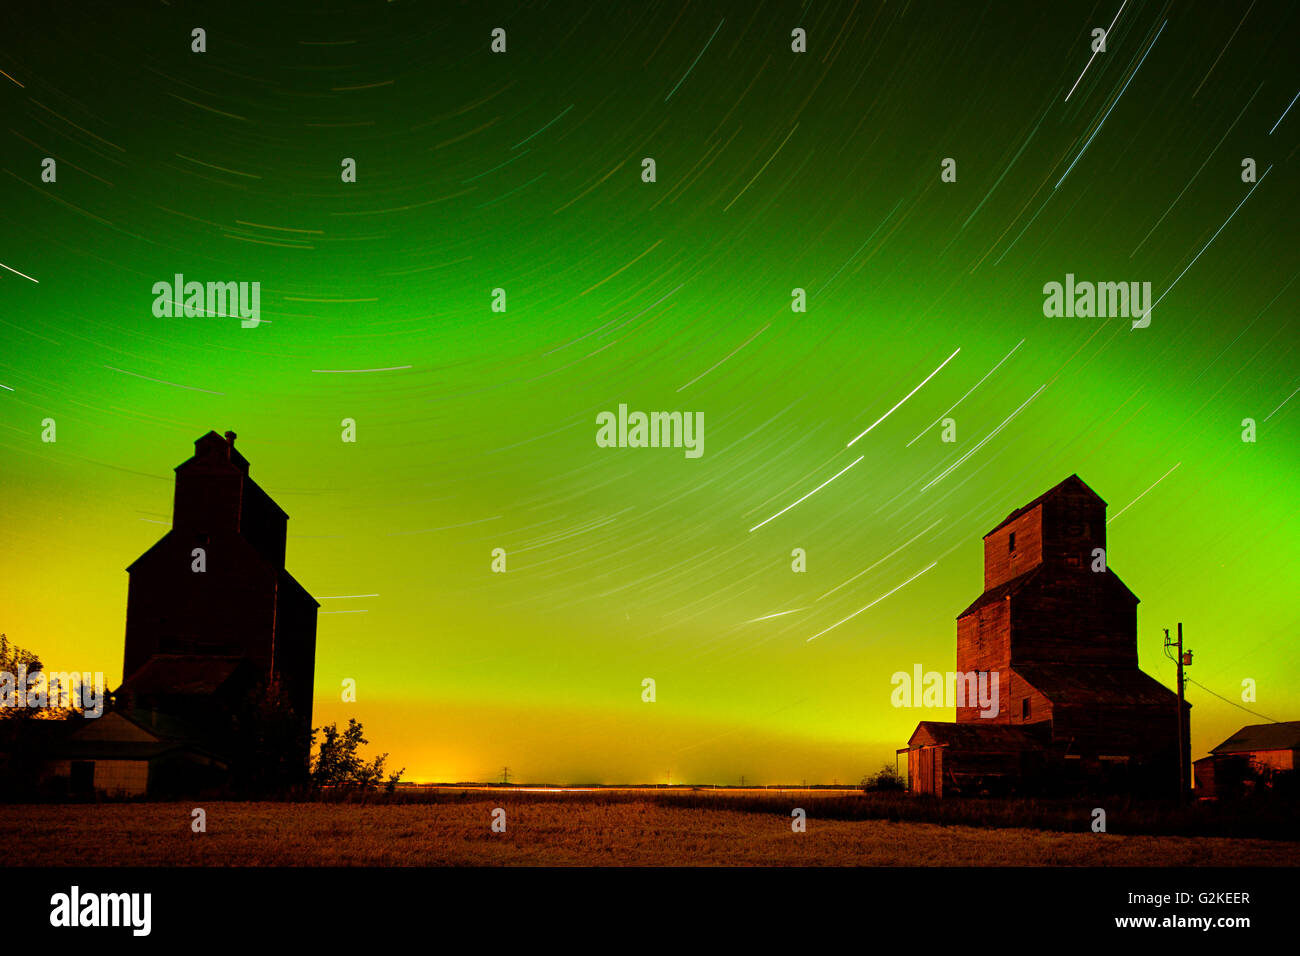 Grain elevator in ghost town with northern lights in the northern sky Lepine Saskatchewan Canada - Stock Image